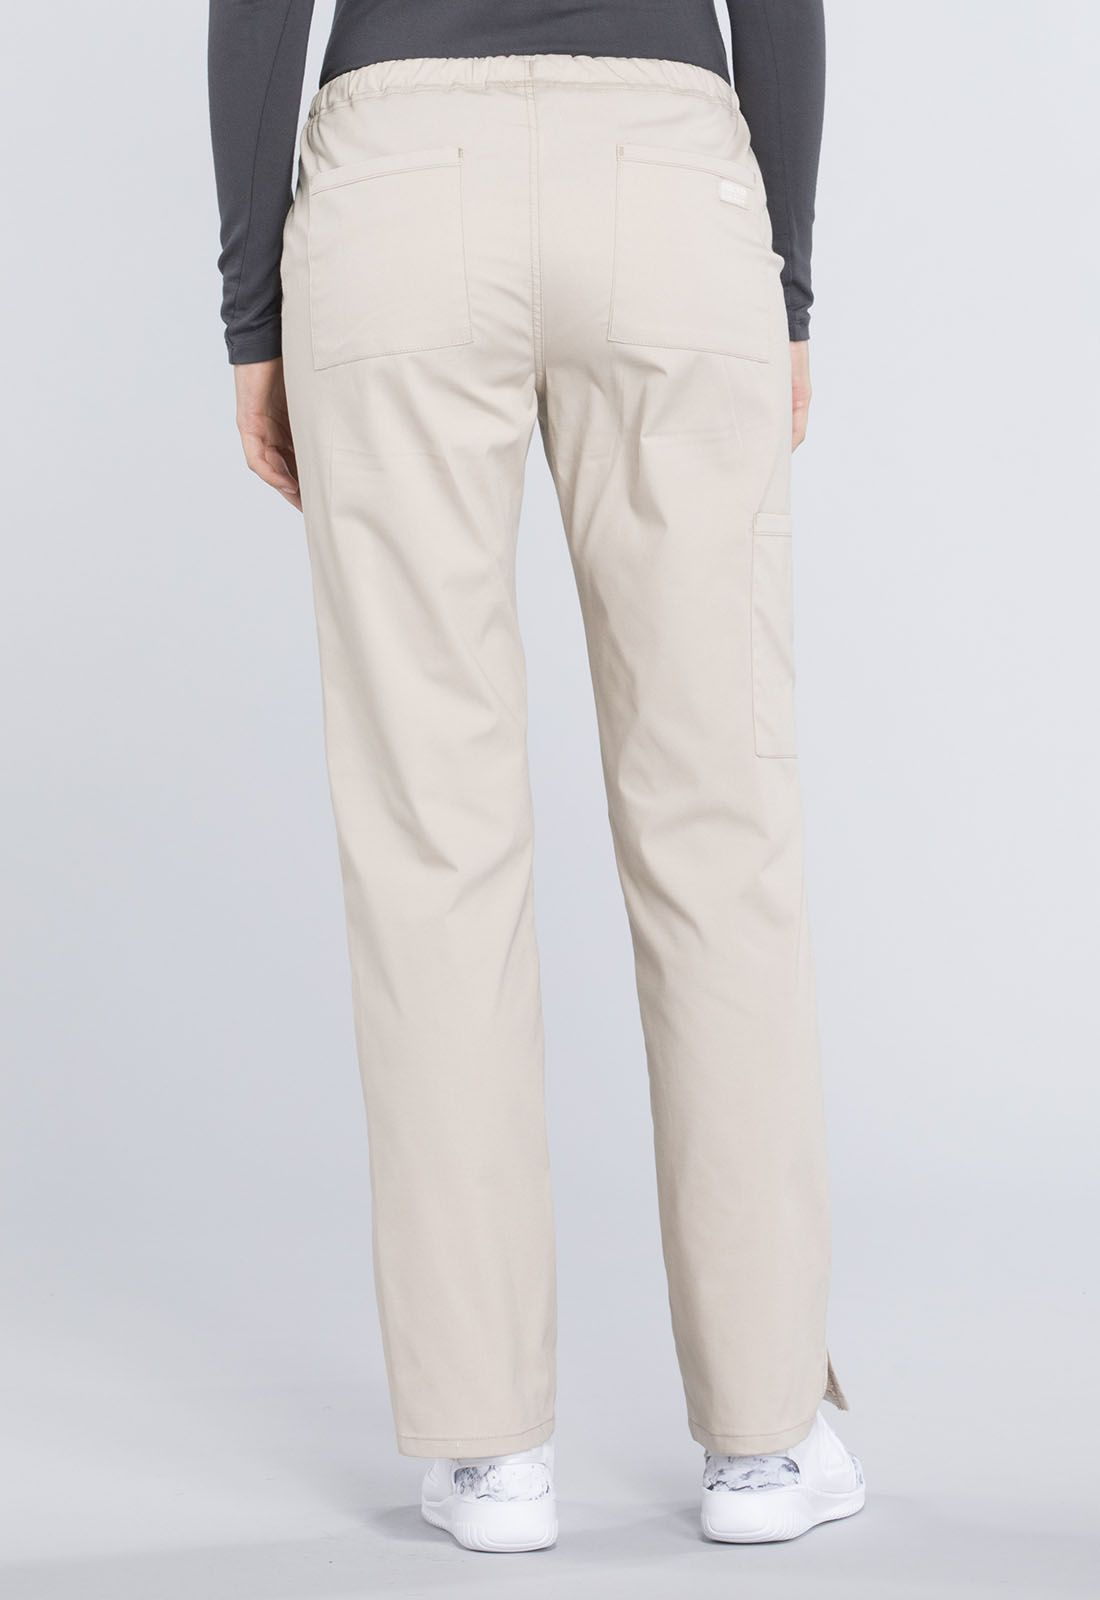 https://medcloth.by/images/stories/virtuemart/product/cherokee-ww160-khaki-4.jpg